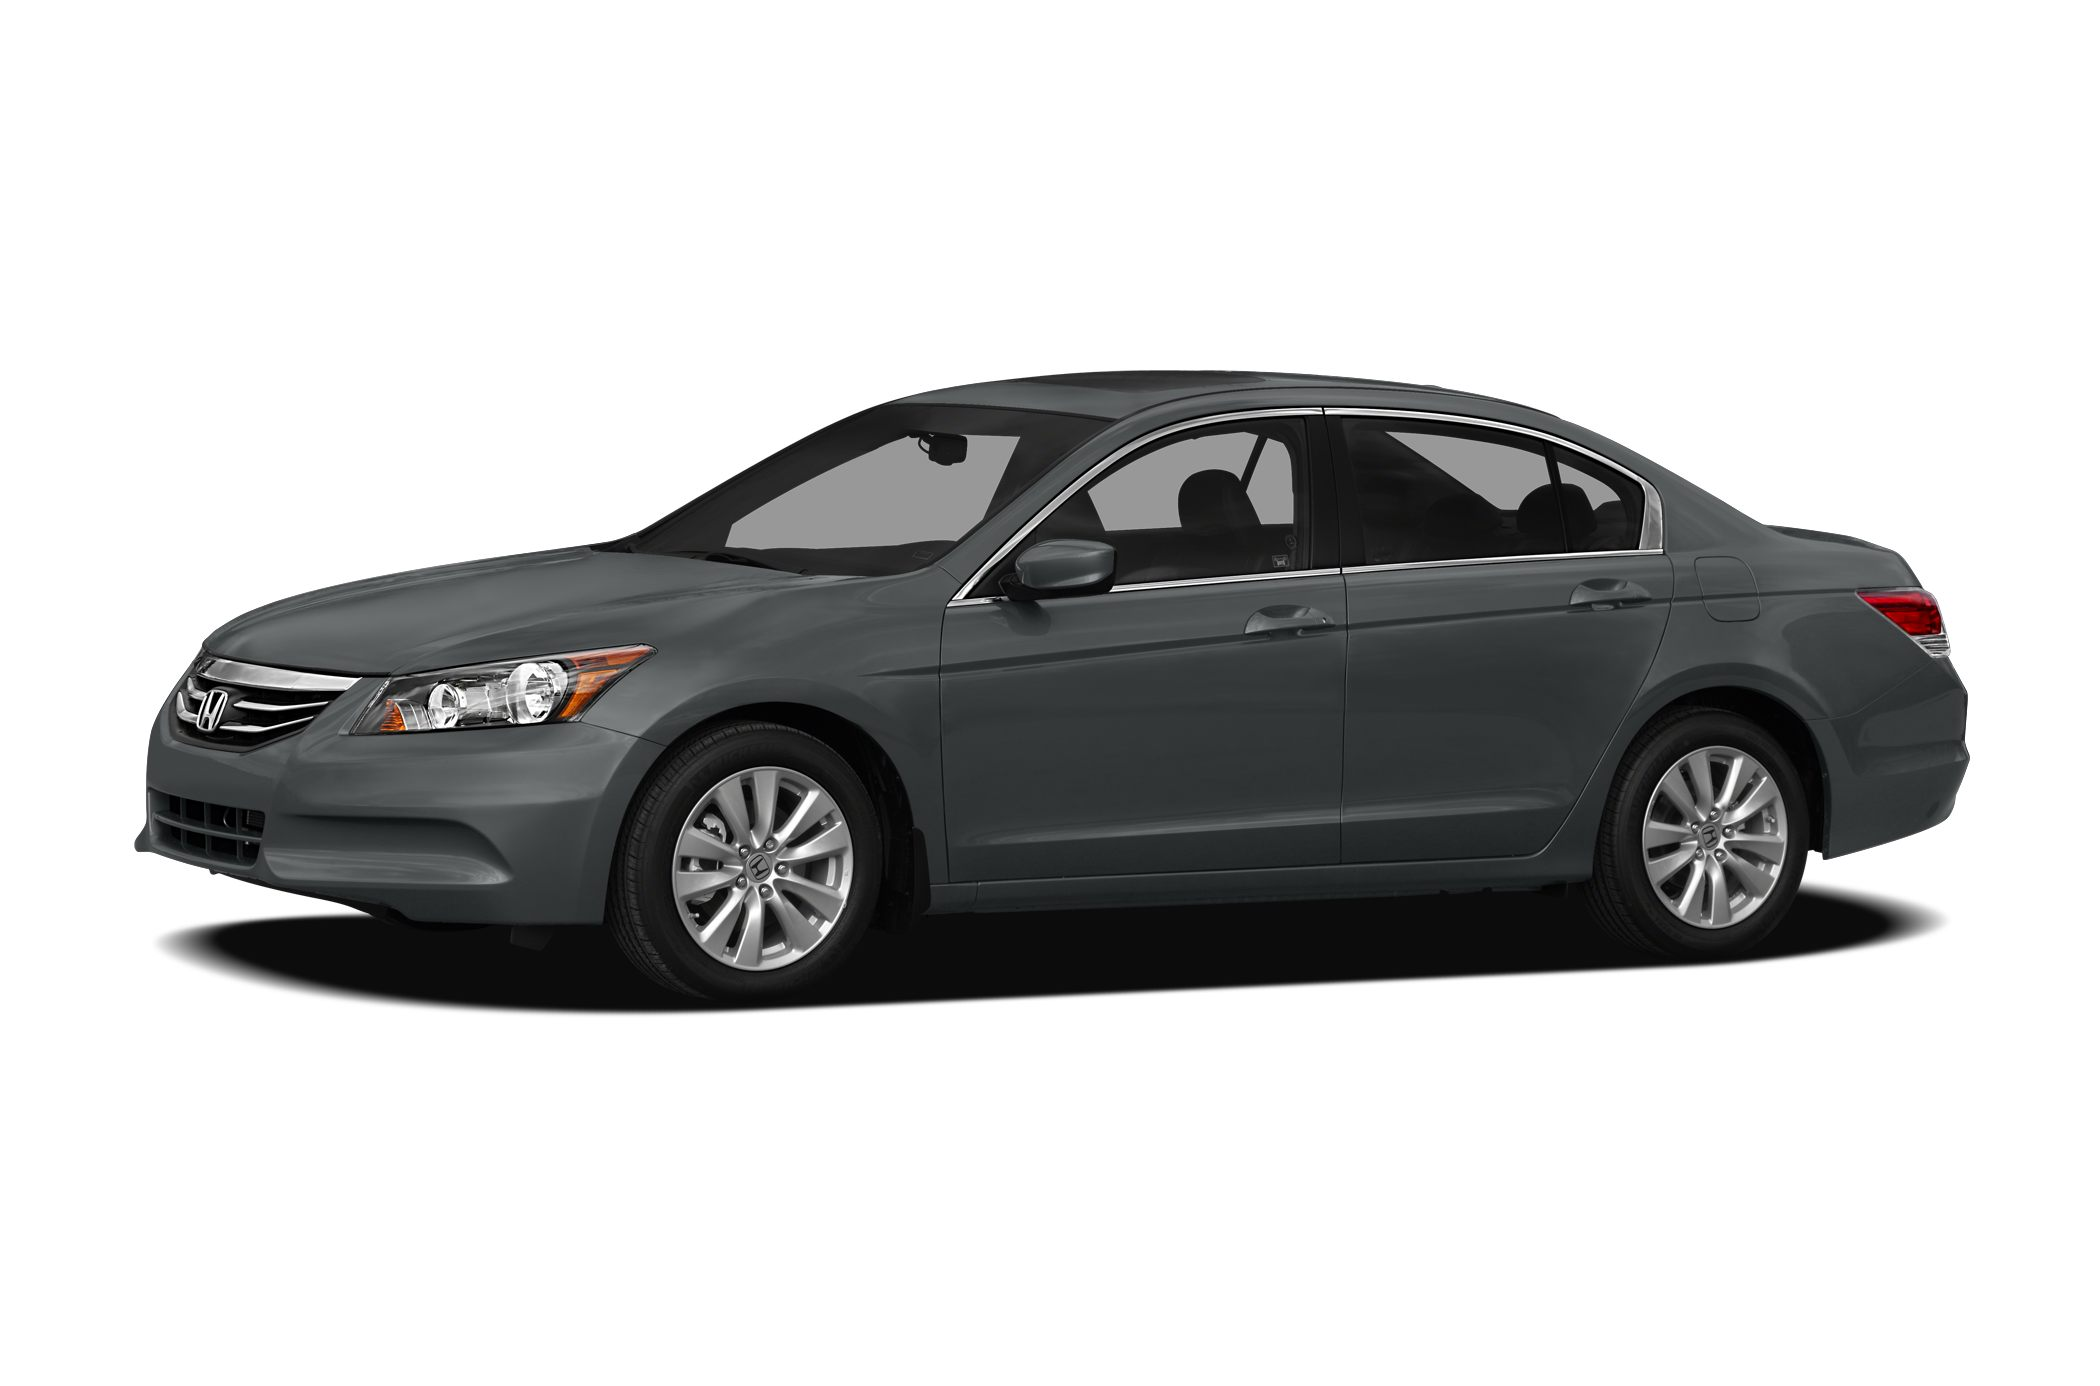 2012 Honda Accord Safety Features